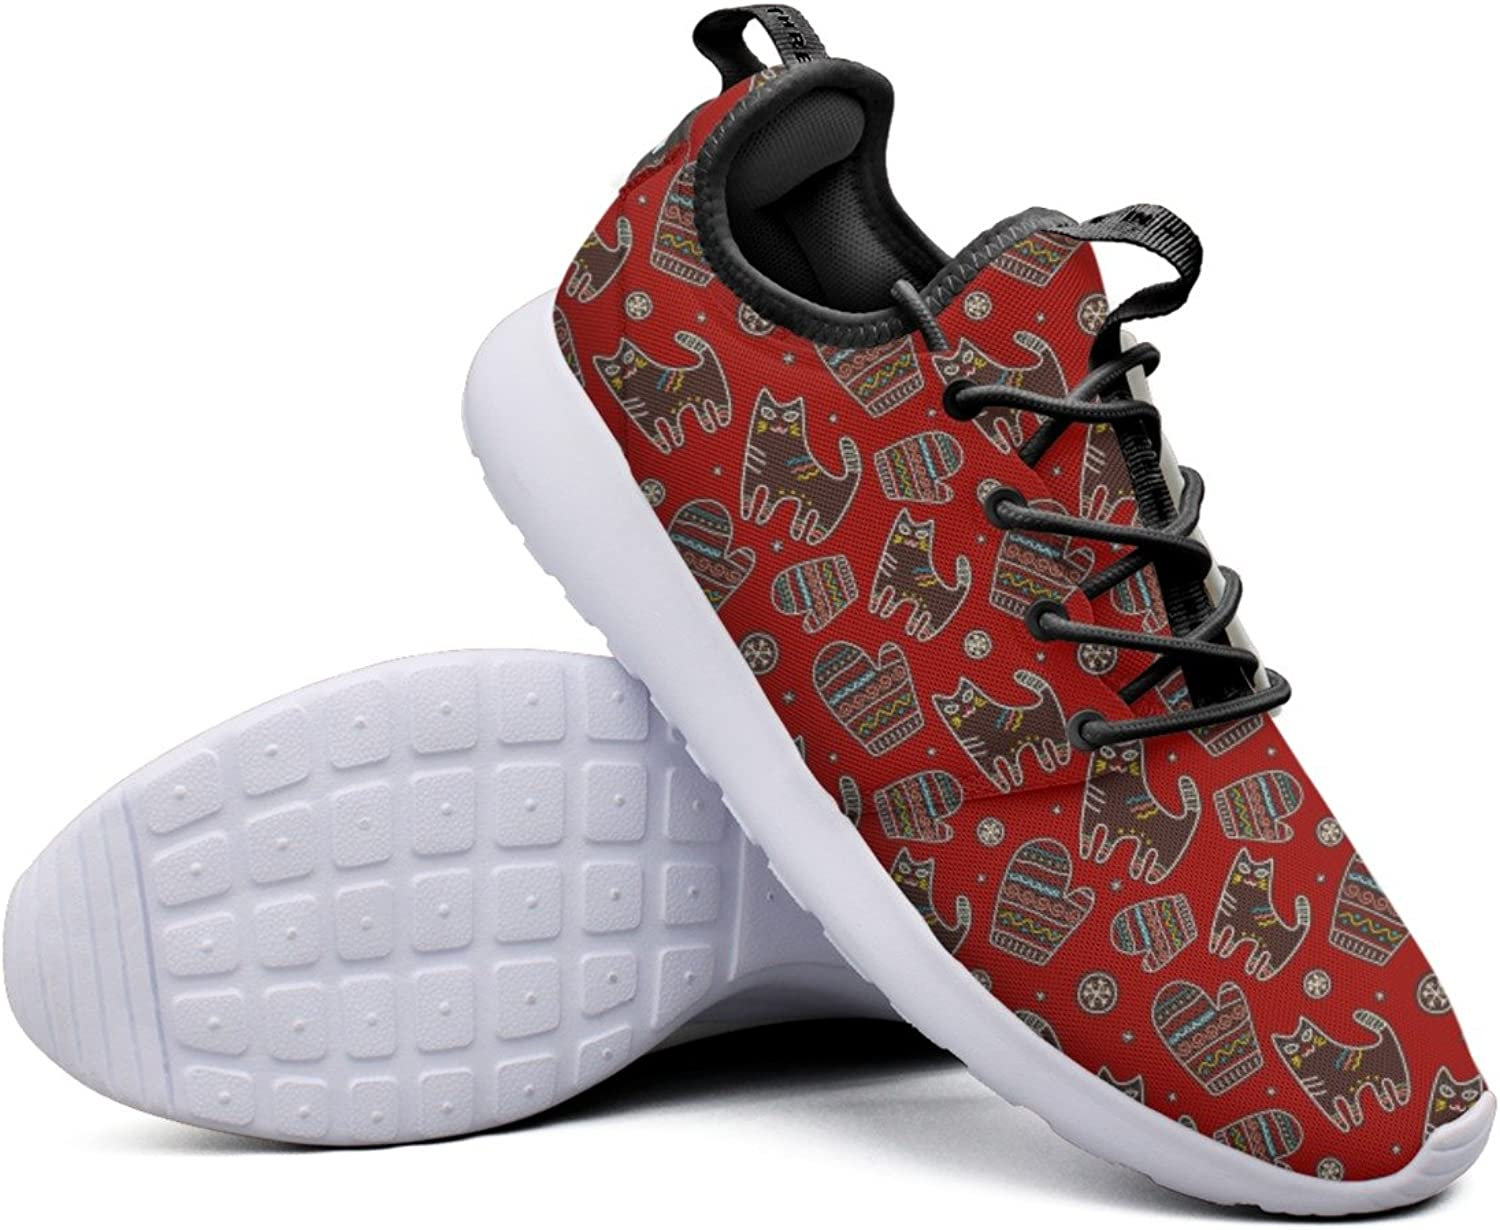 Fashion Sneakers shoes For Women Kittens Scandi Mittens Stylish Lightweight Breathable Mesh Womens Tennis shoes